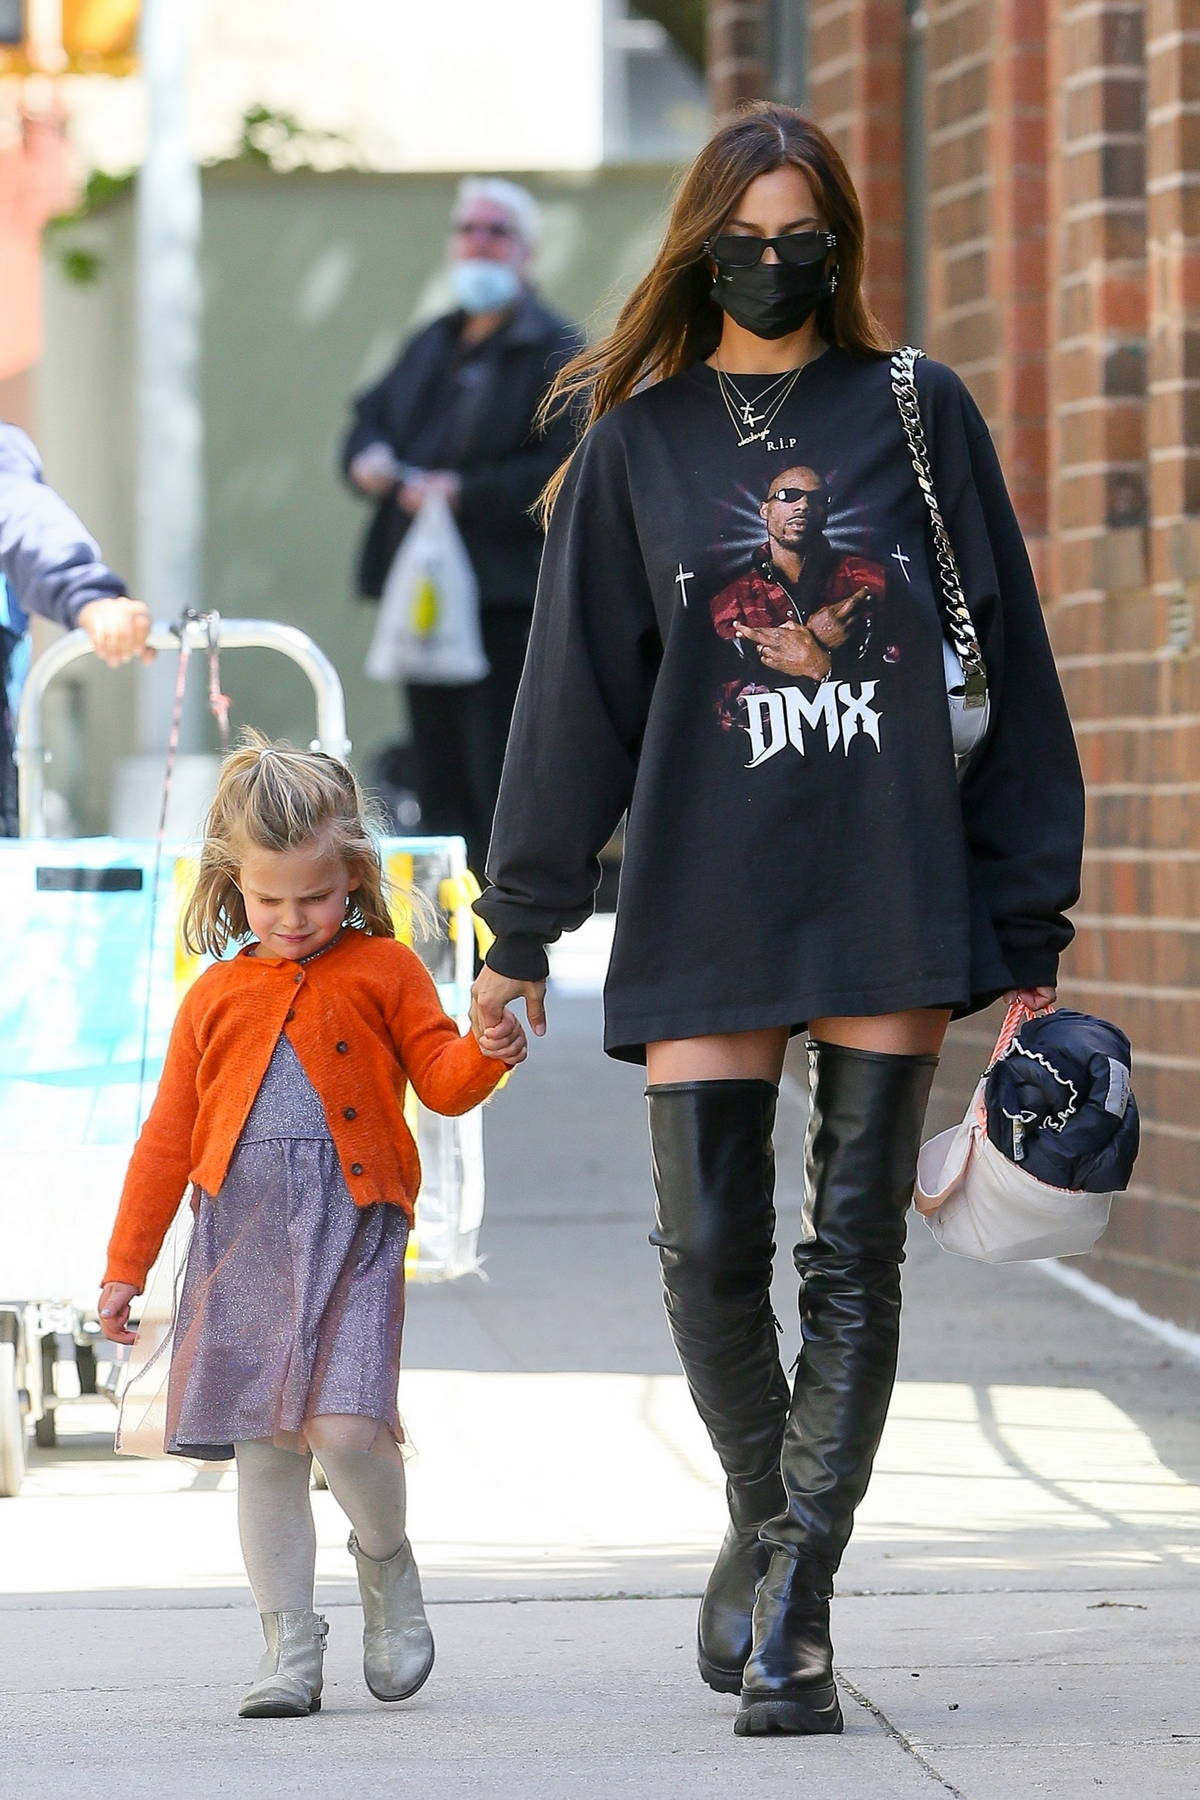 Irina Shayk dons an oversized 'DMX' sweatshirt and a pair of thigh-high boots while stepping out with her daughter in New York City